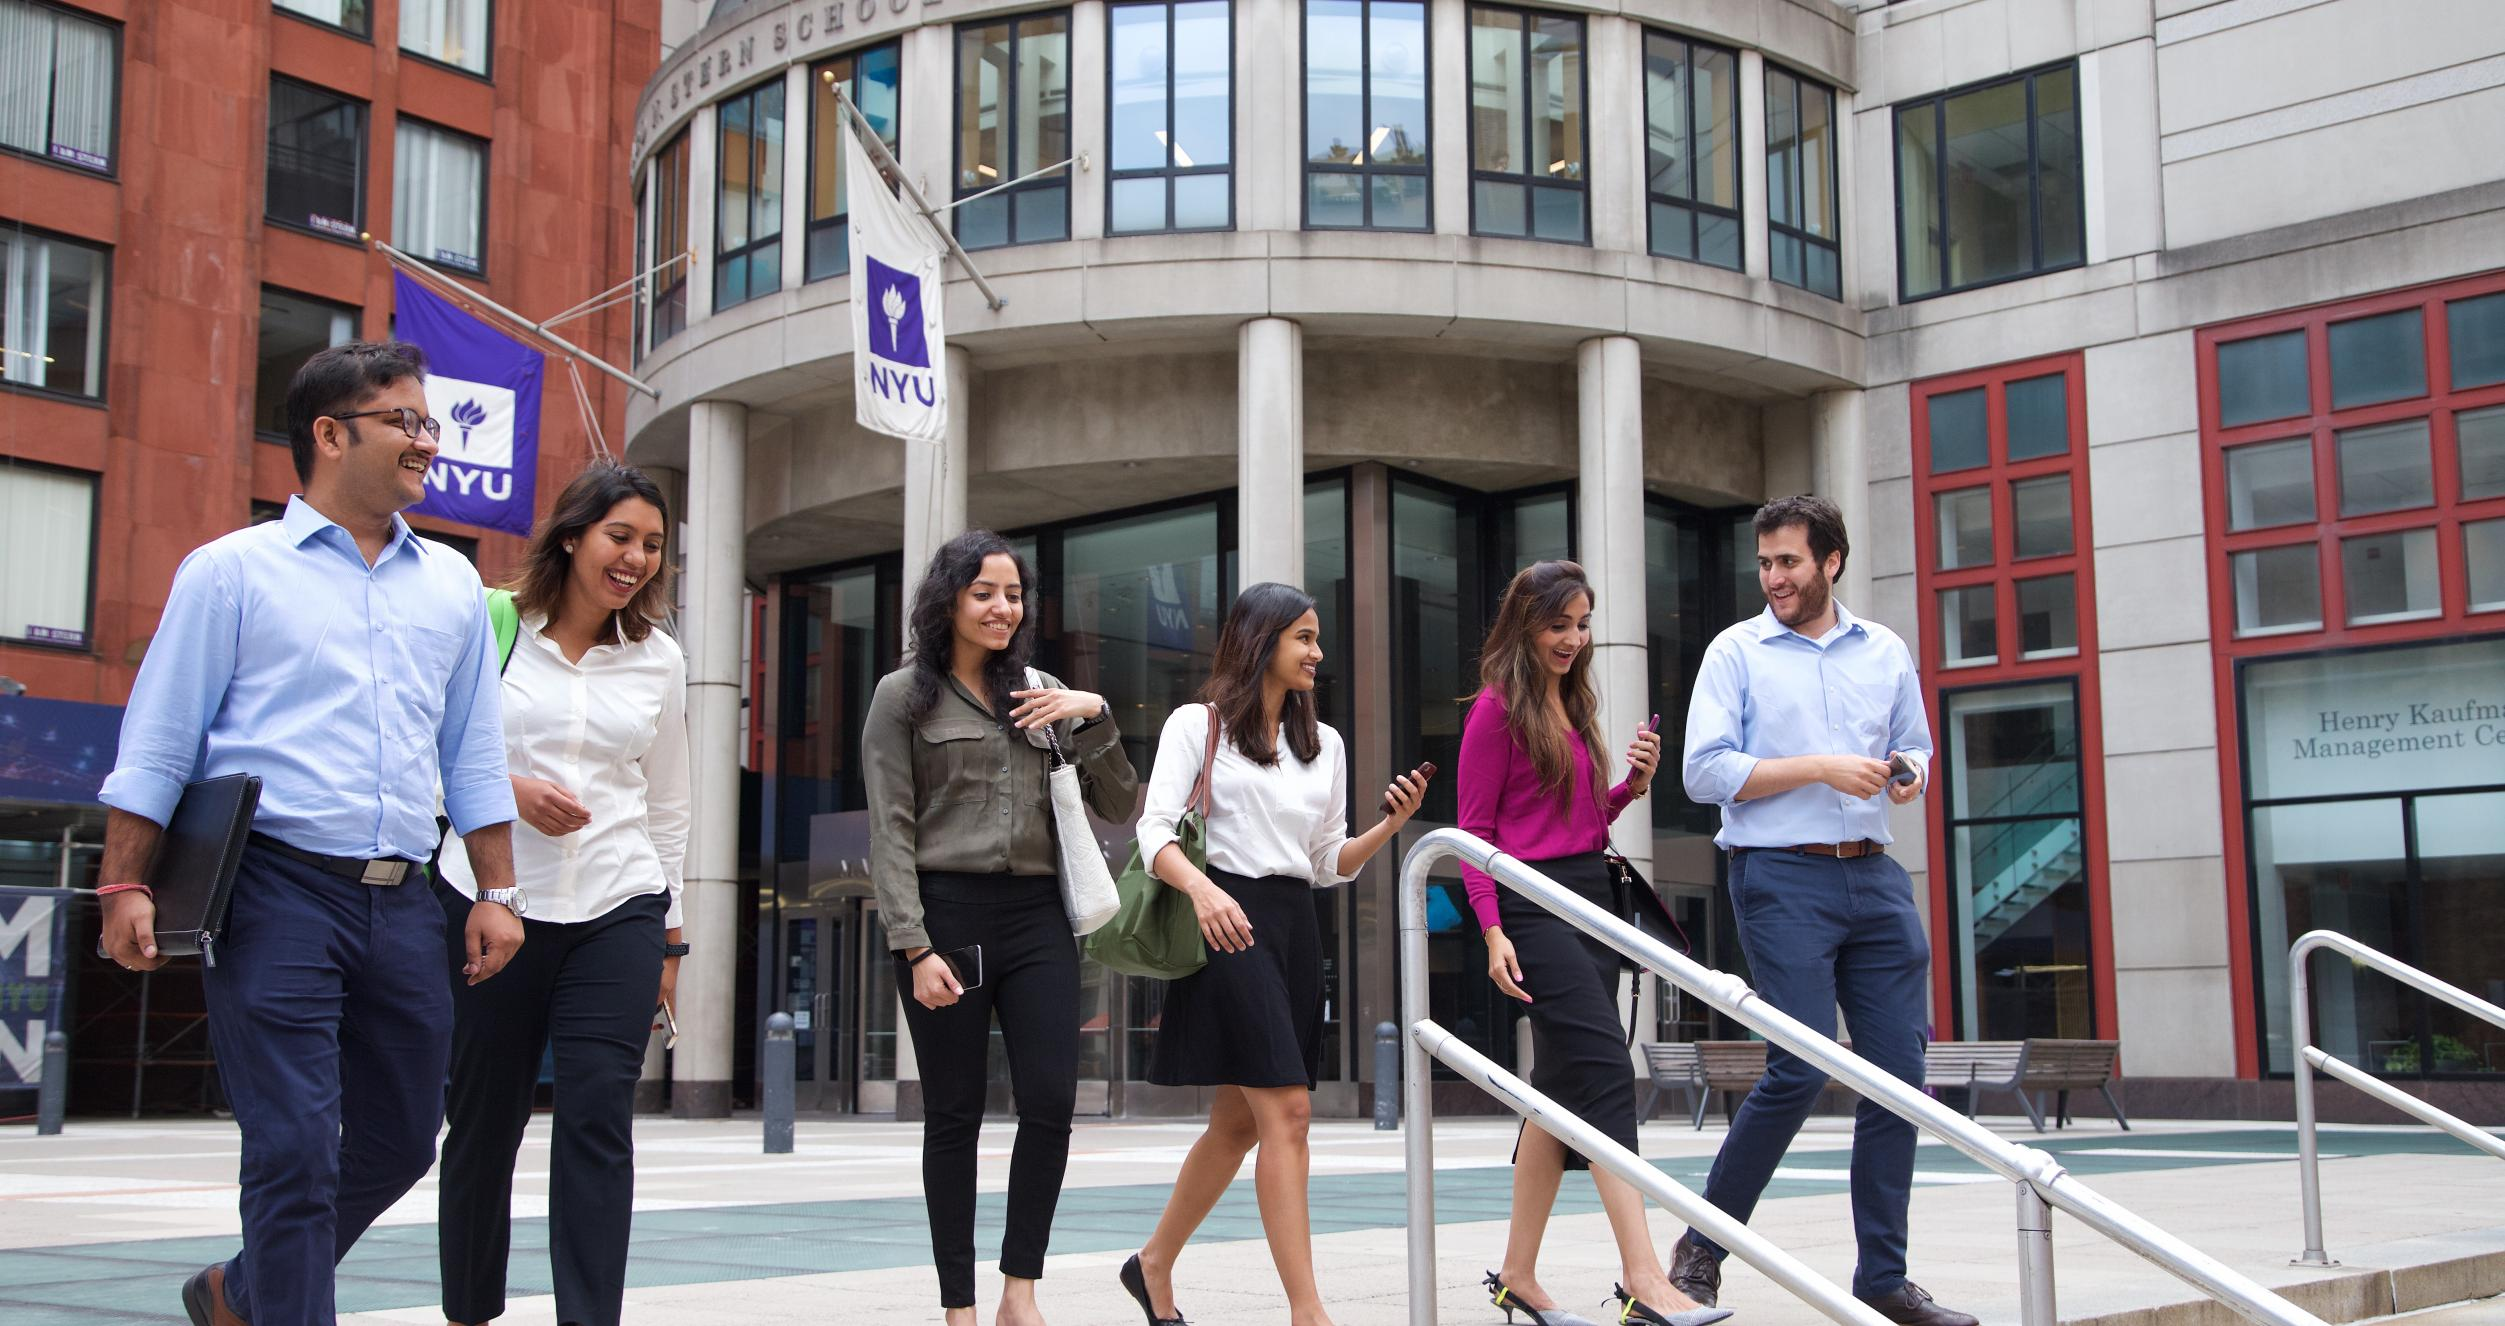 A group of people walking down the steps in front of an NYU building